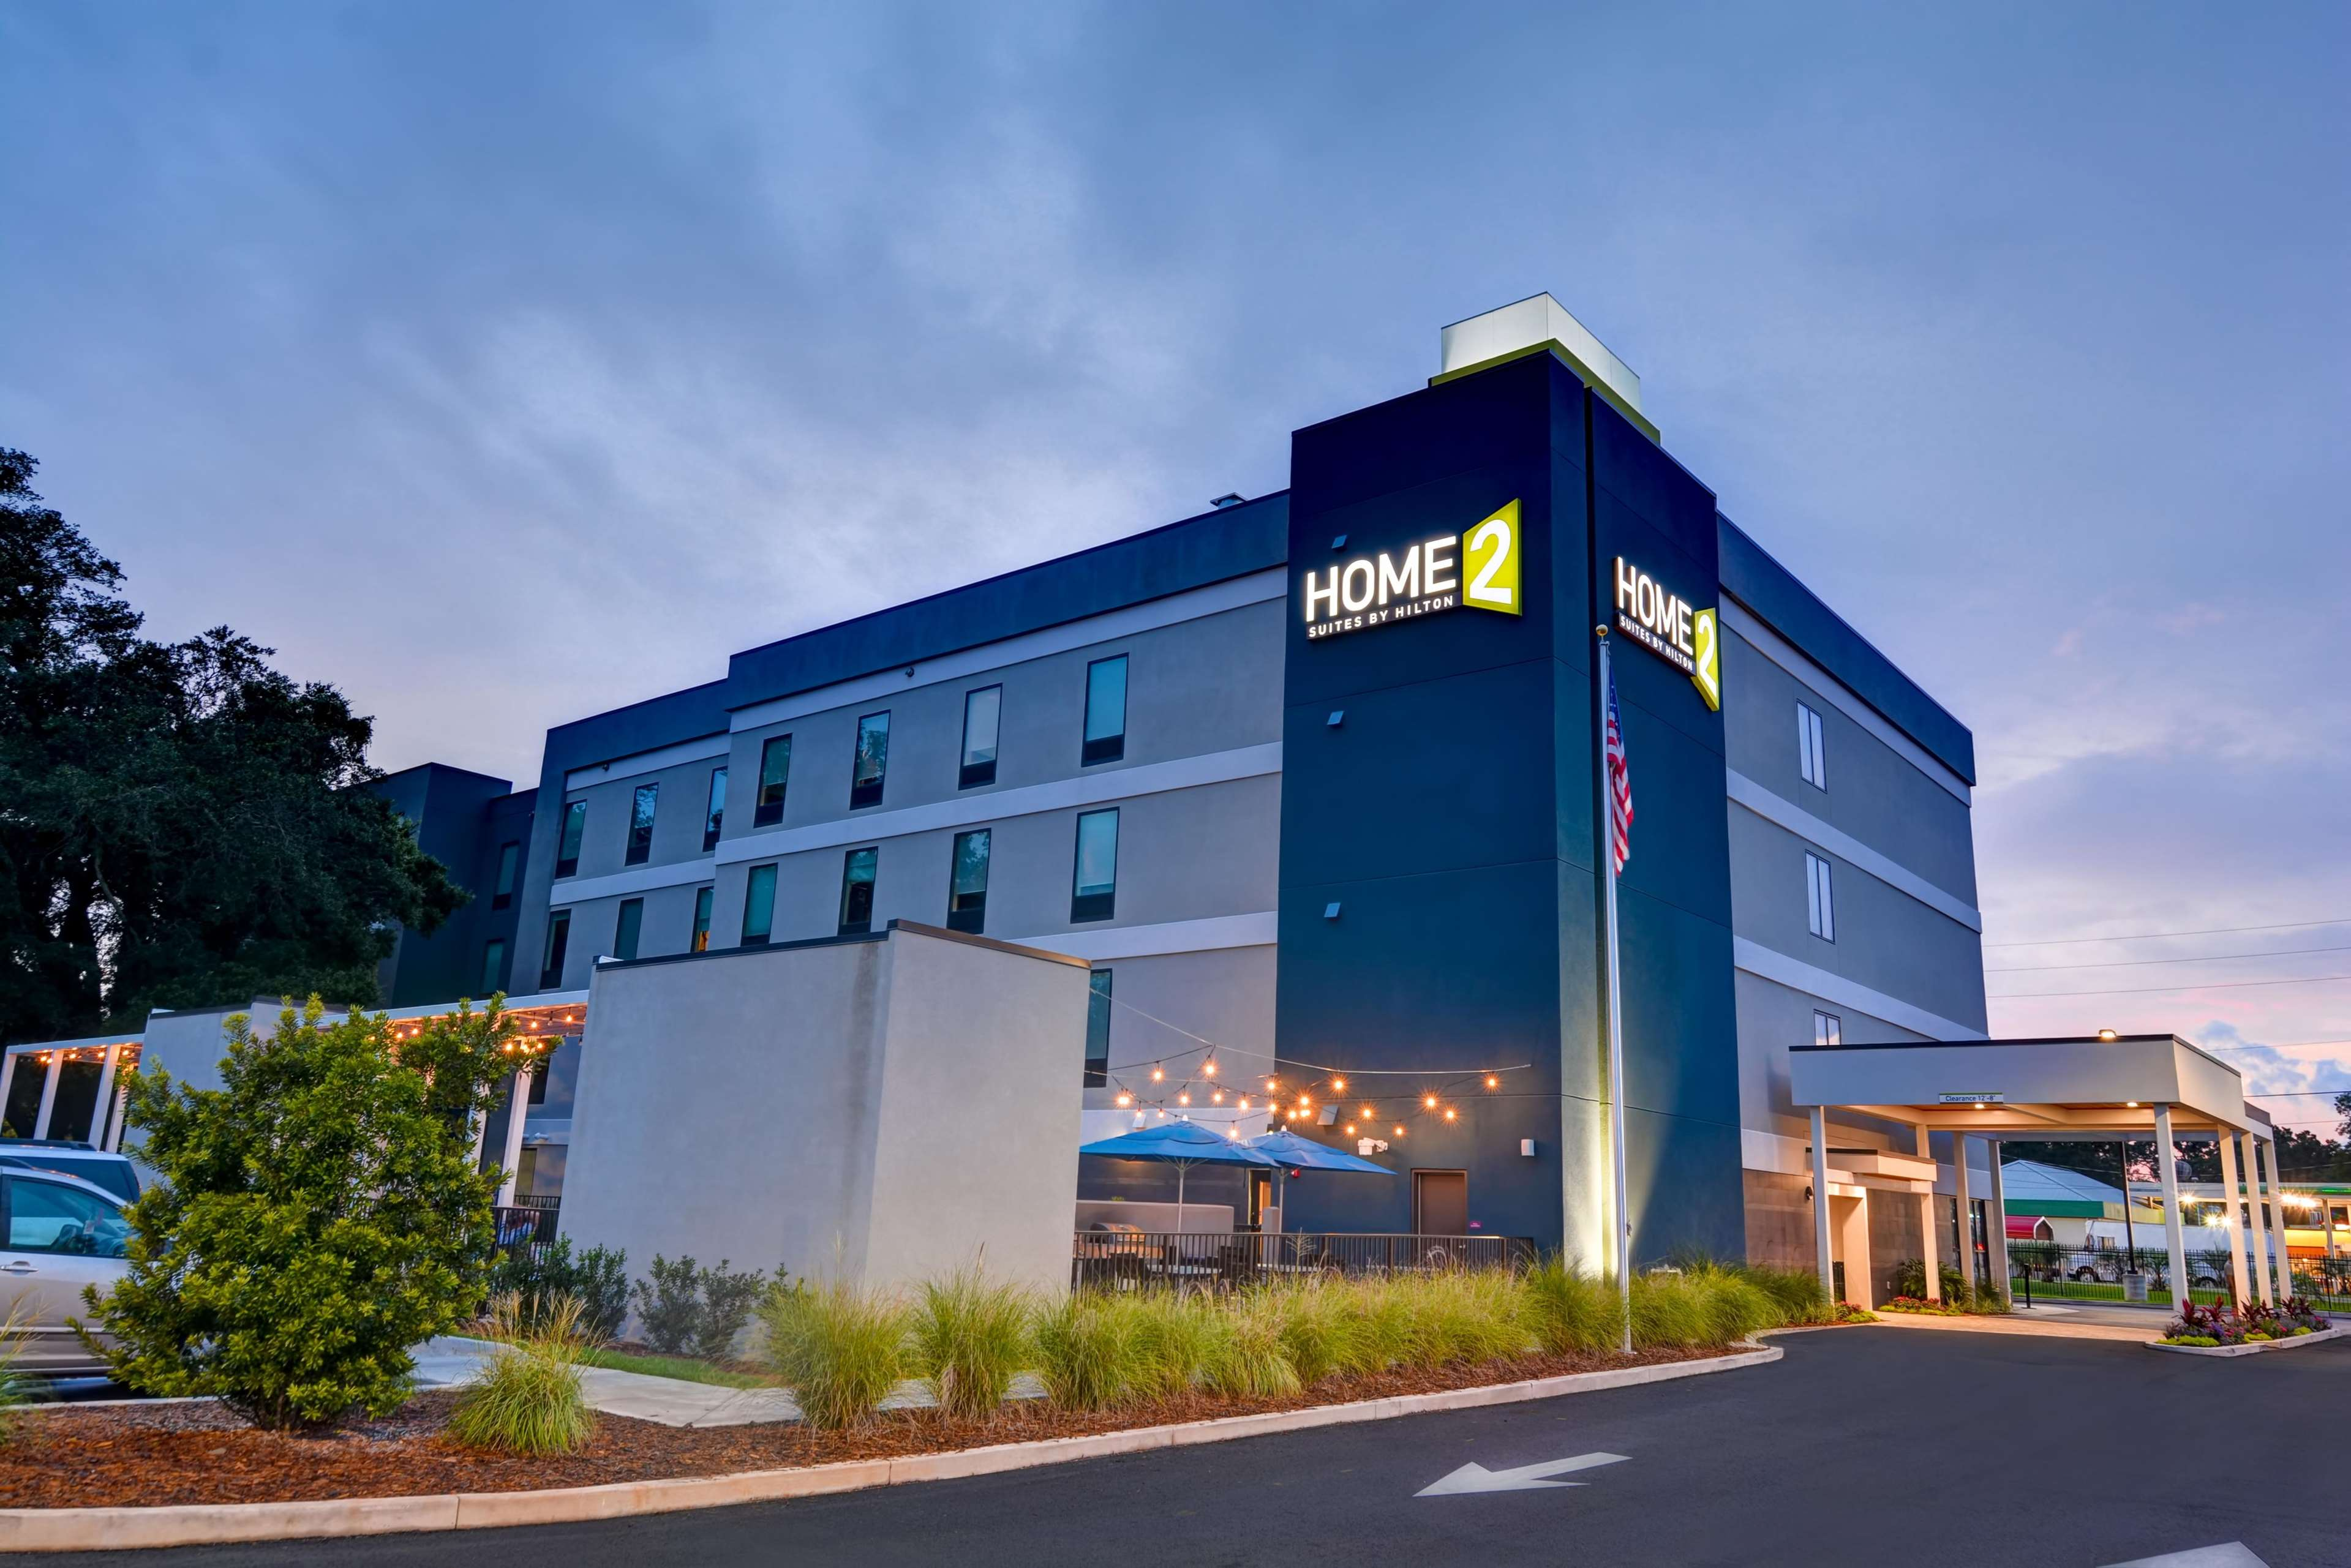 Home2 Suites by Hilton Pensacola I-10 at North Davis Hwy image 5